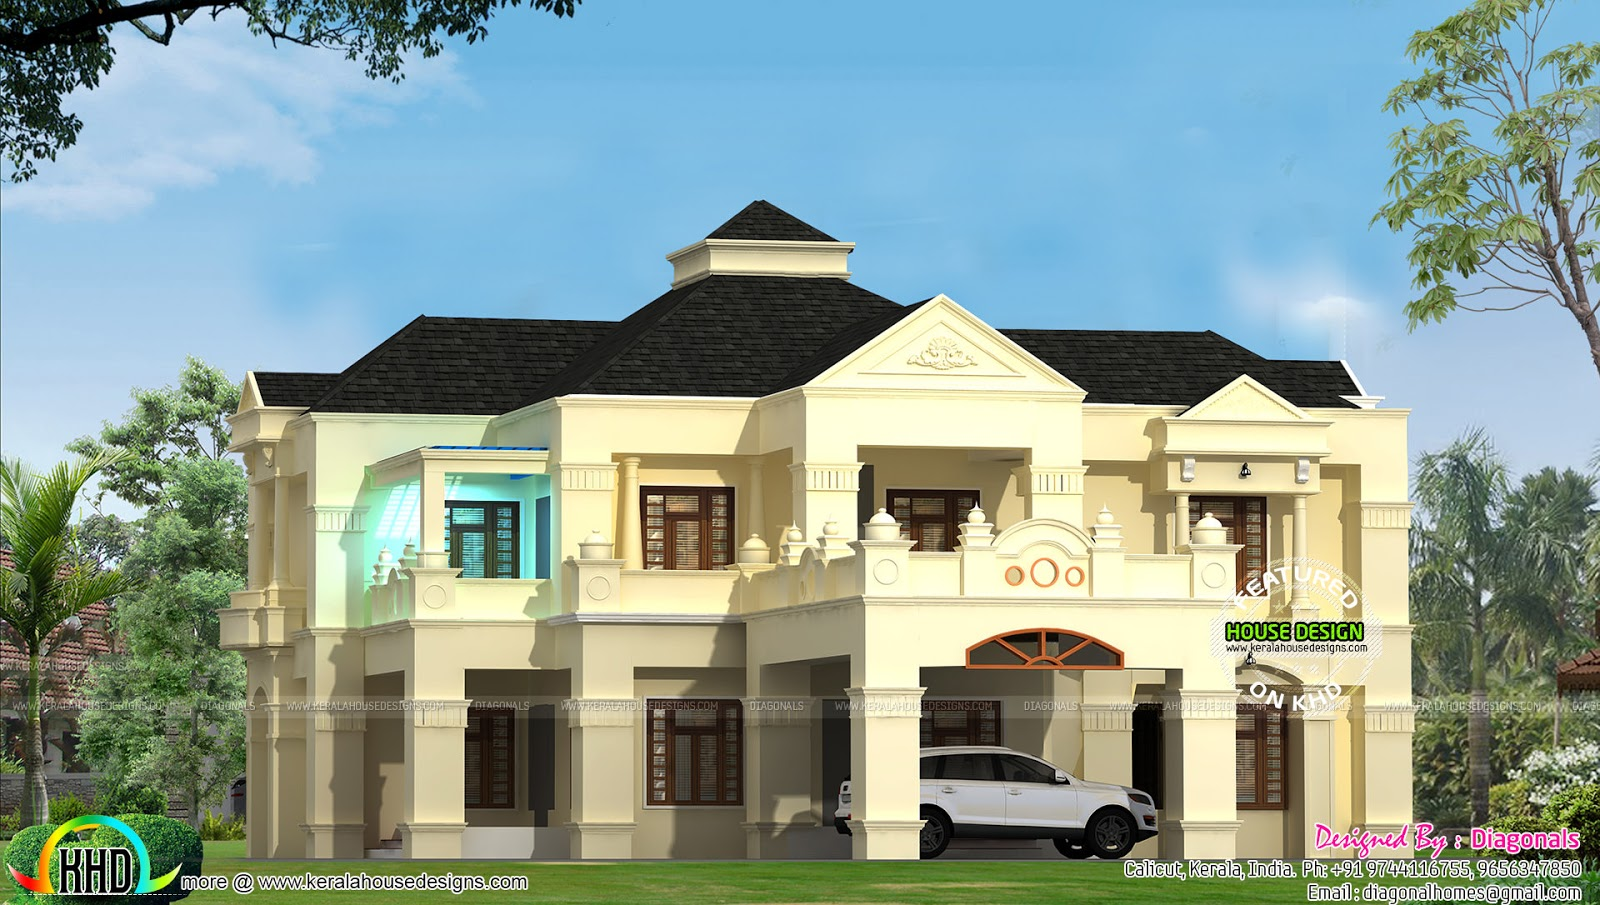 Colonial style 4500 sq ft home design kerala home design for 4500 sq ft home